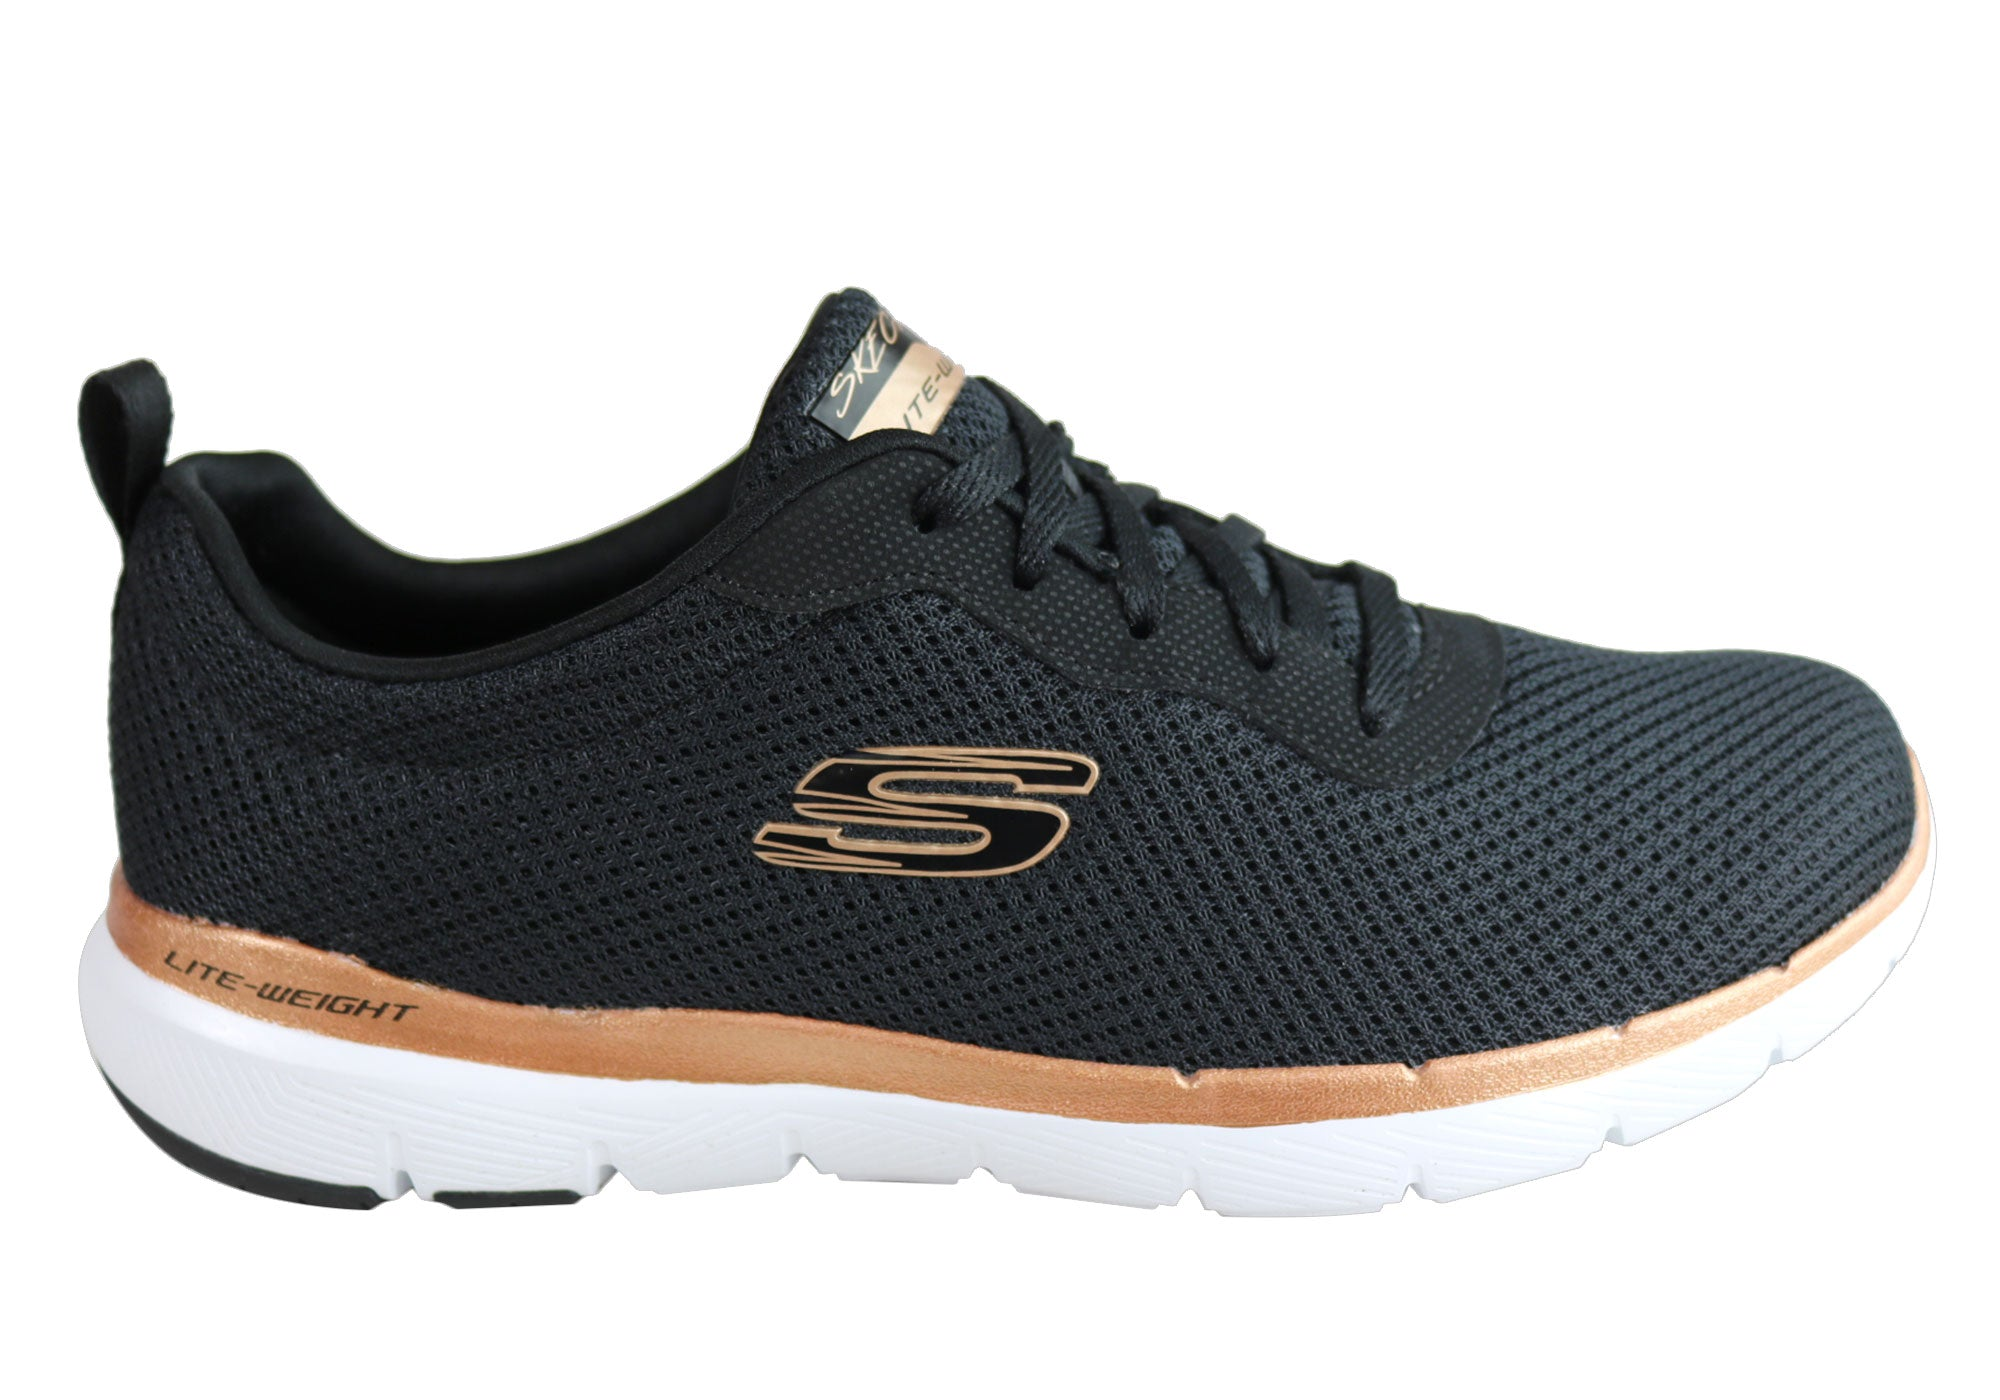 15e0430f Home Skechers Womens Flex Appeal 3.0 First Insight Comfy Memory Foam Shoes.  Black/Rose Gold ...